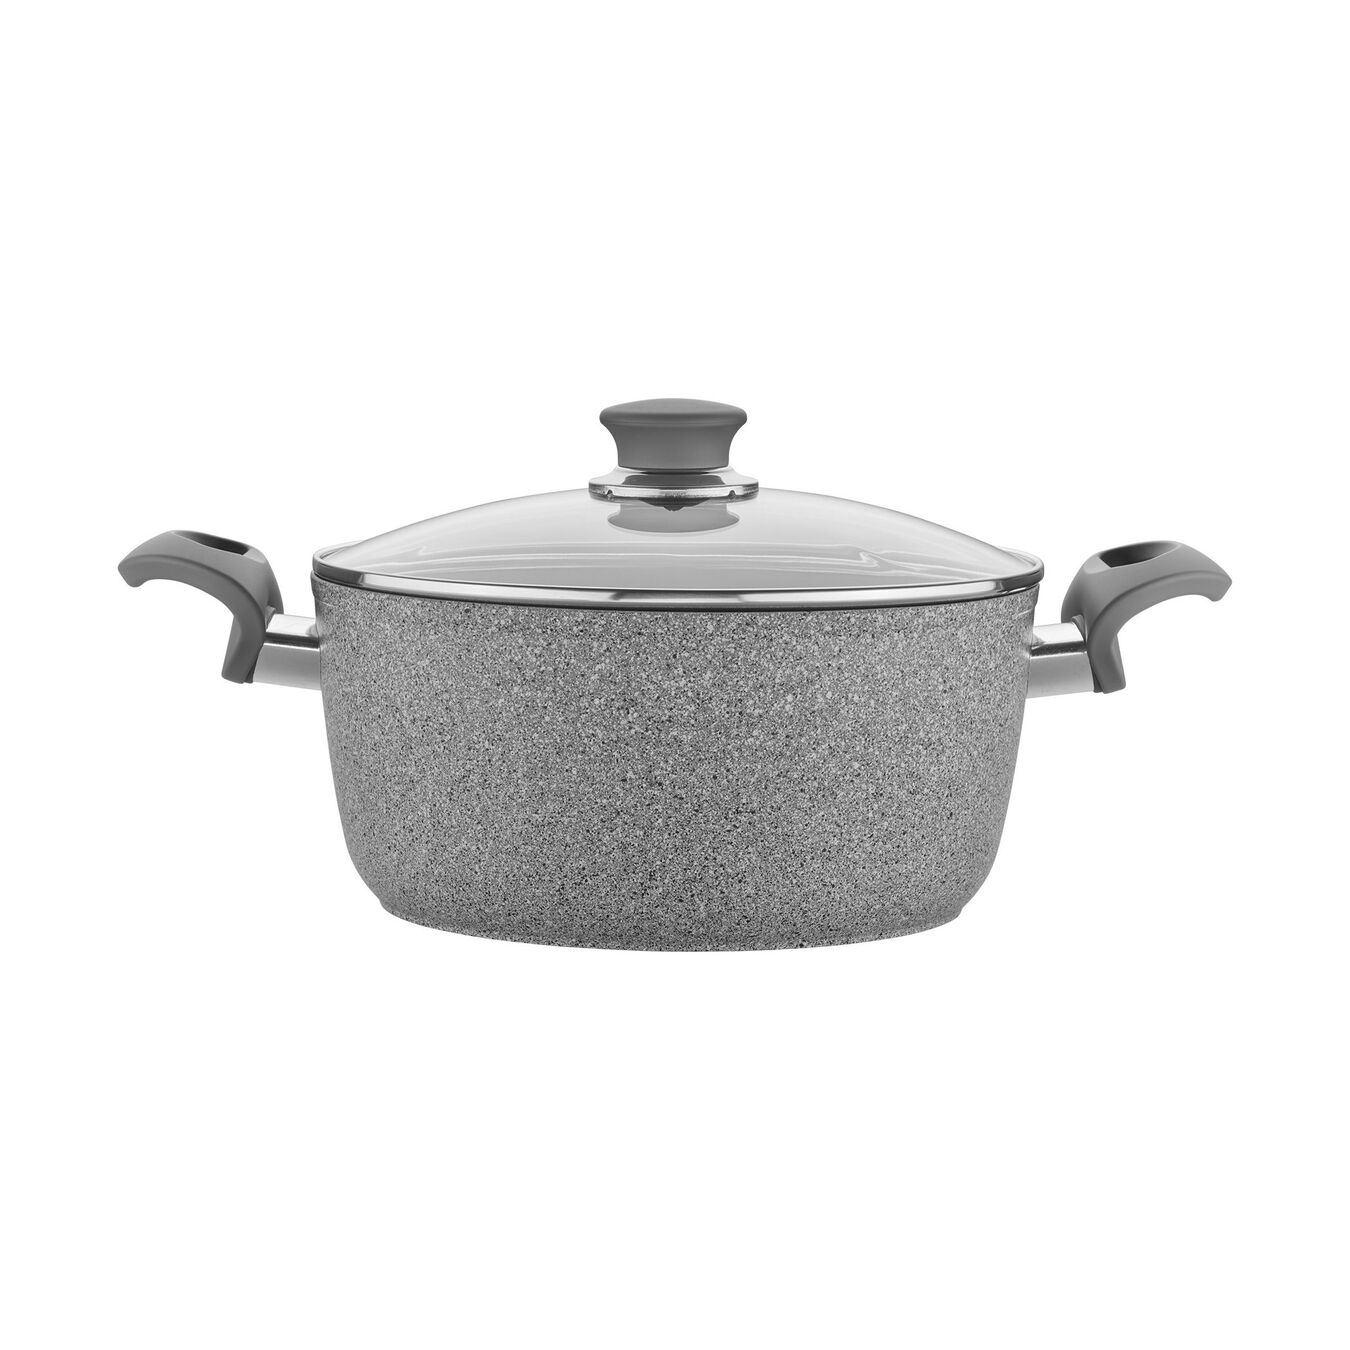 4.8-qt Nonstick Dutch Oven with Lid,,large 1